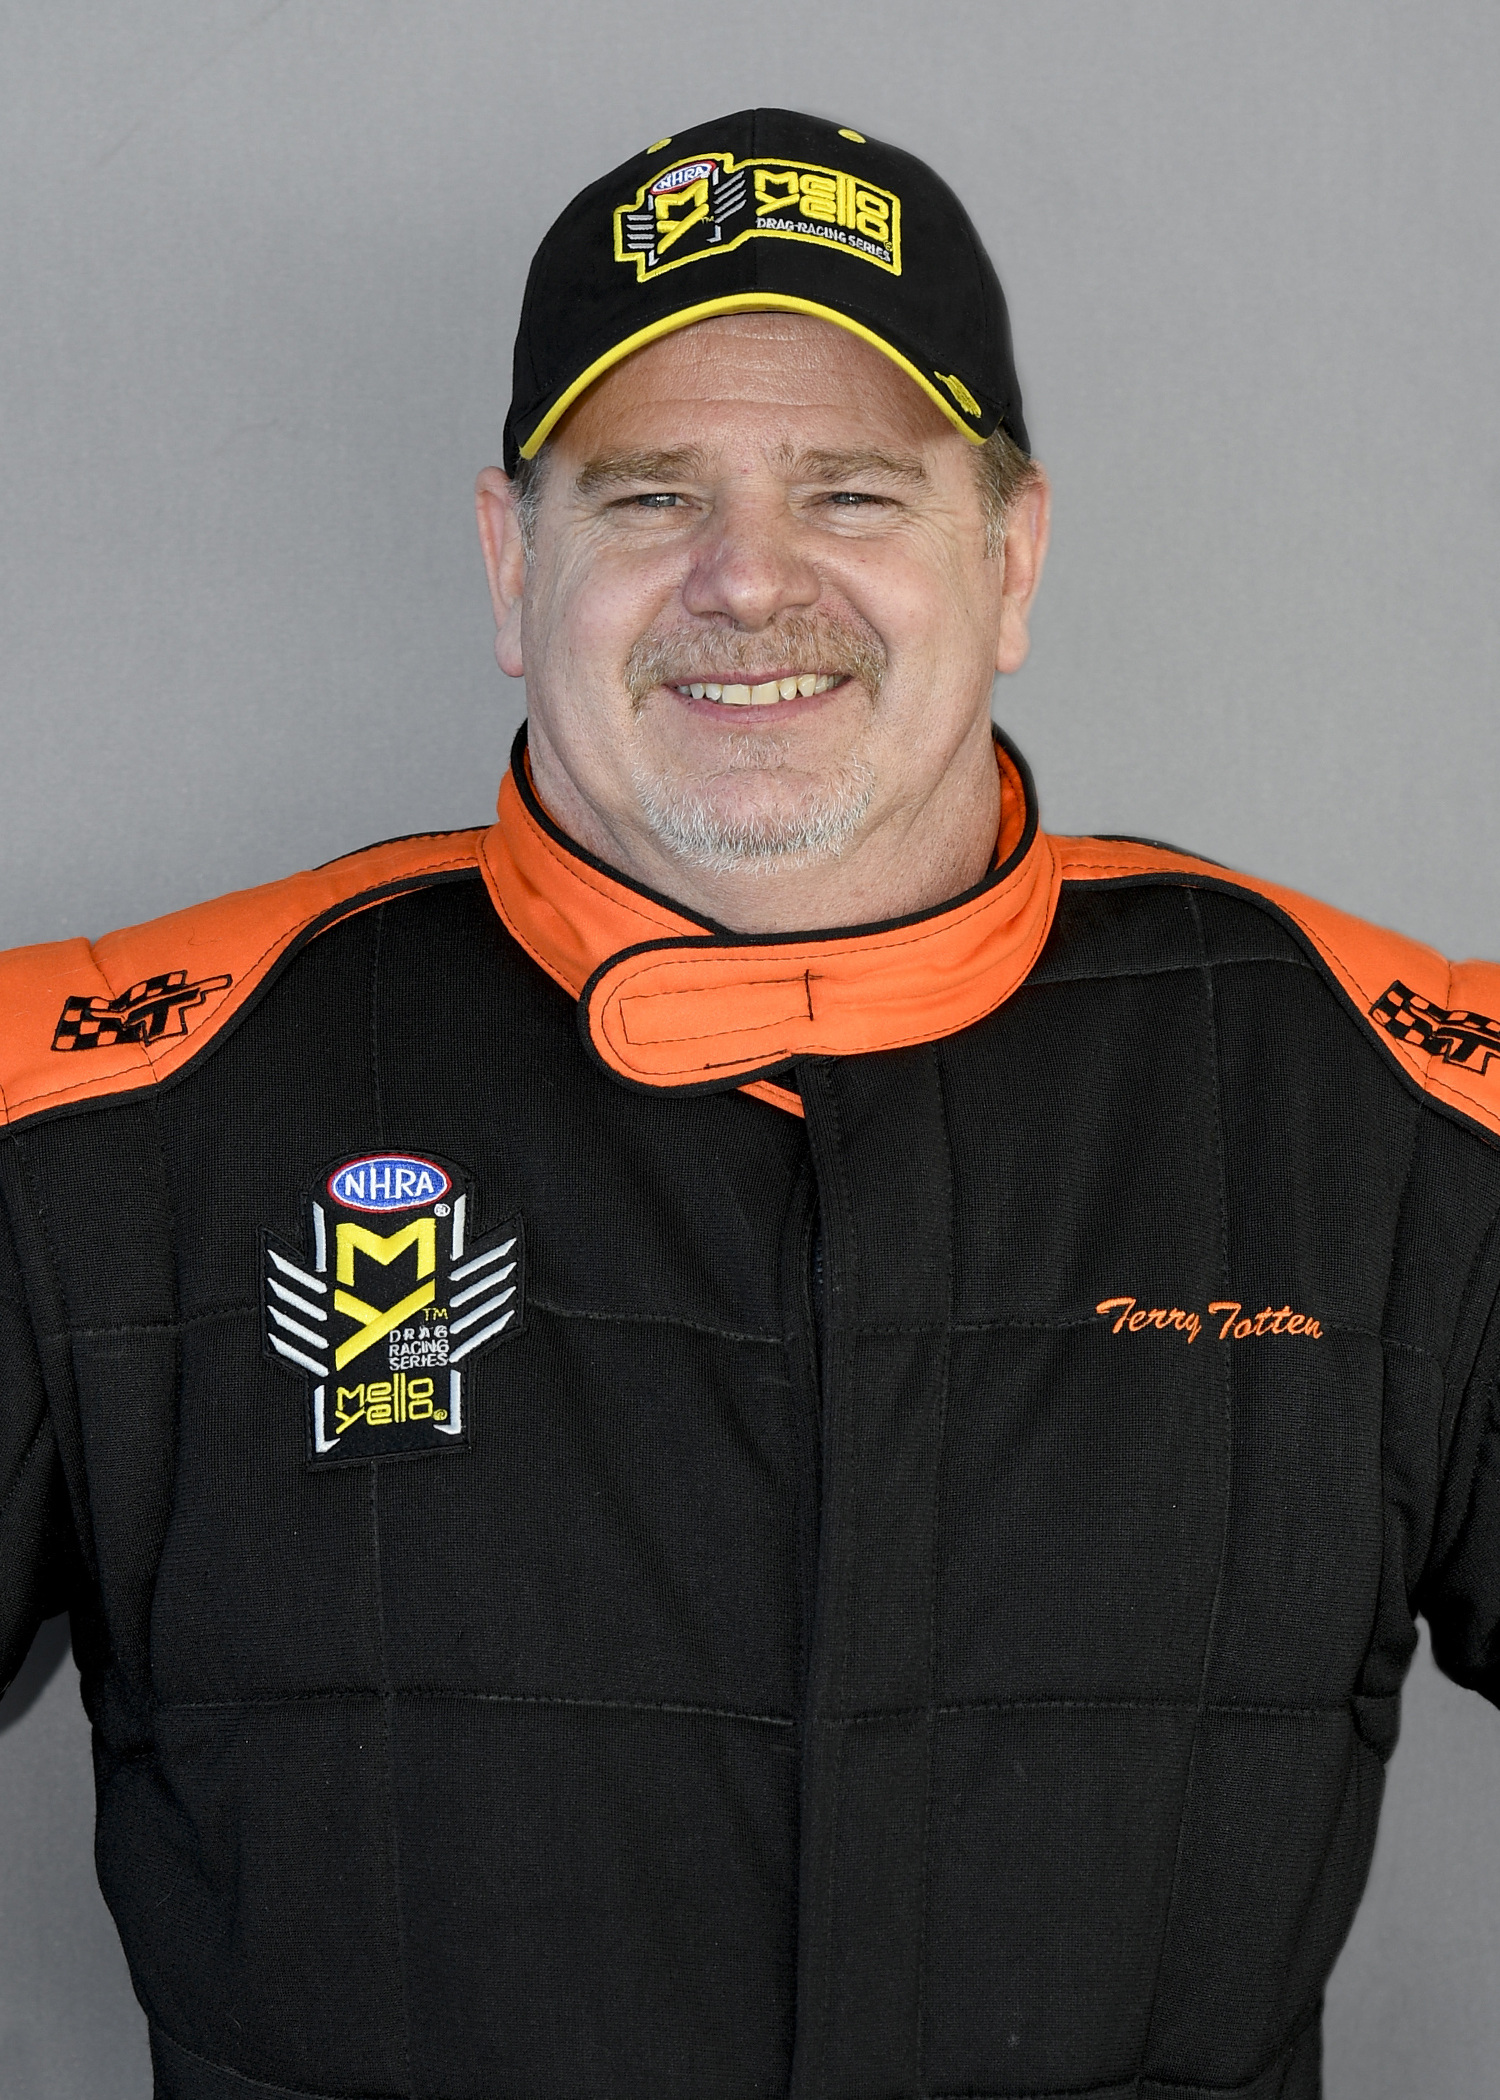 NHRA Rookie - Top Fuel - Terry Totten